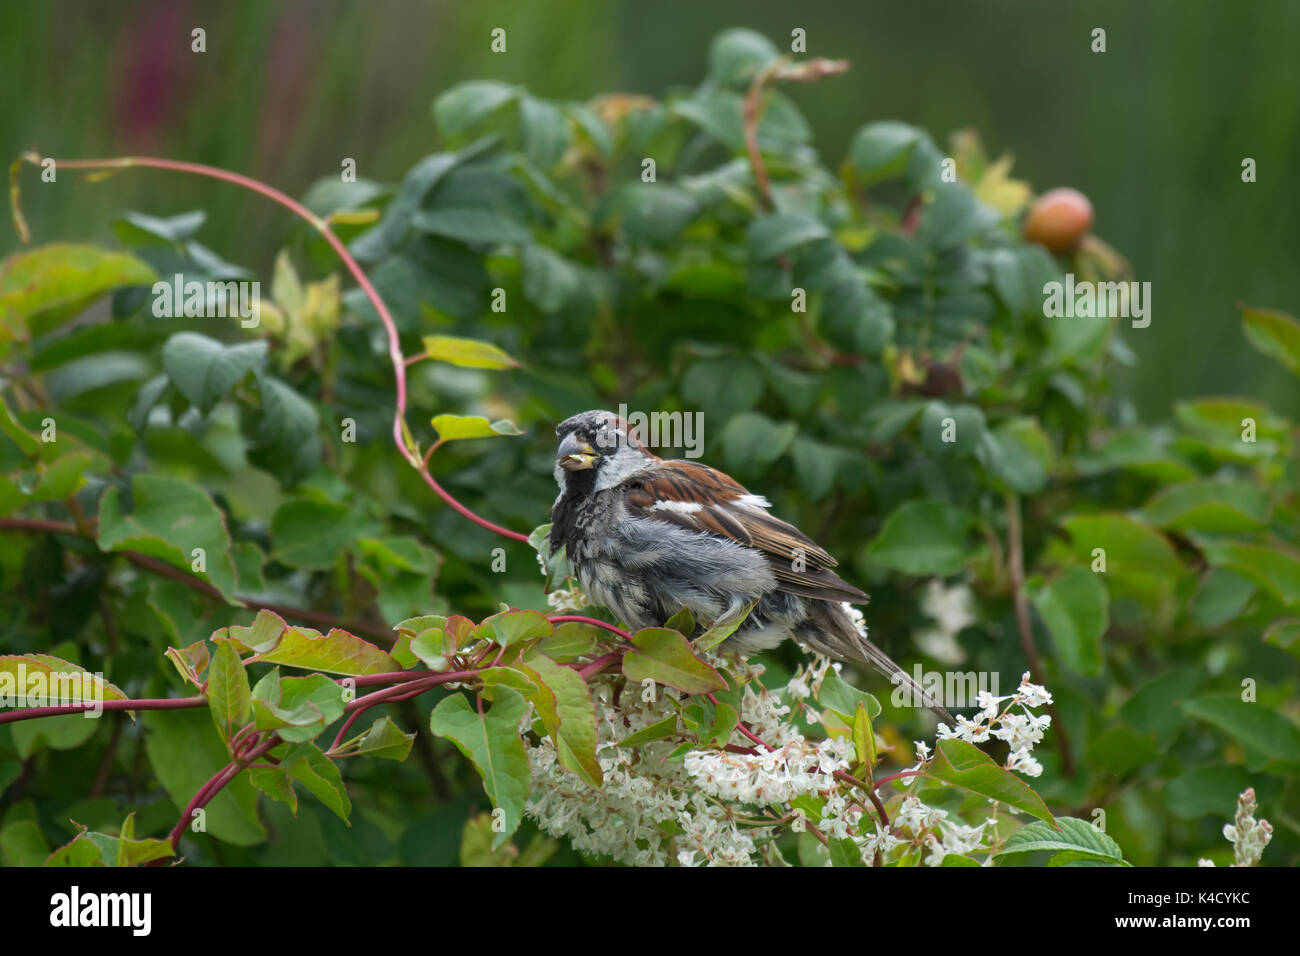 Male House sparrow, Passer domesticus, perched on Russian vine, Fallopia baldschuanica, growing in dog rose, Rosa canina, Lancashire, UK - Stock Image